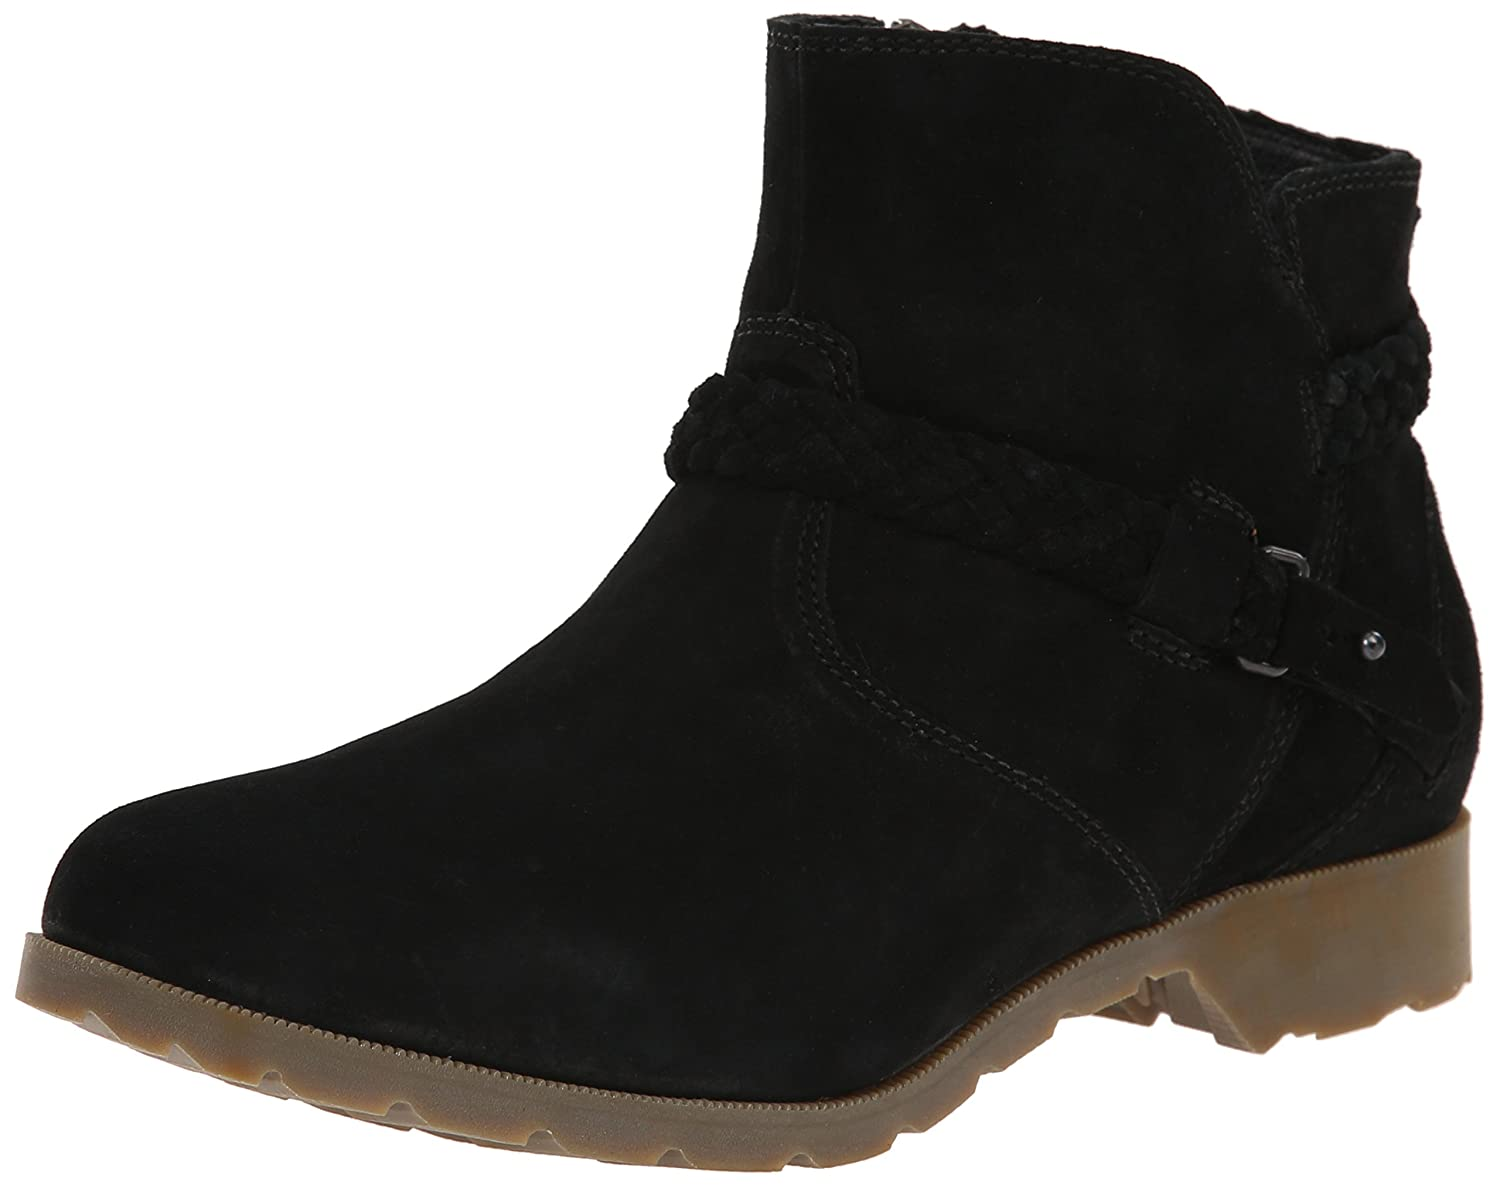 Teva Women's Delavina Suede Ankle Boot B00PS26PMM 9 B(M) US|Black